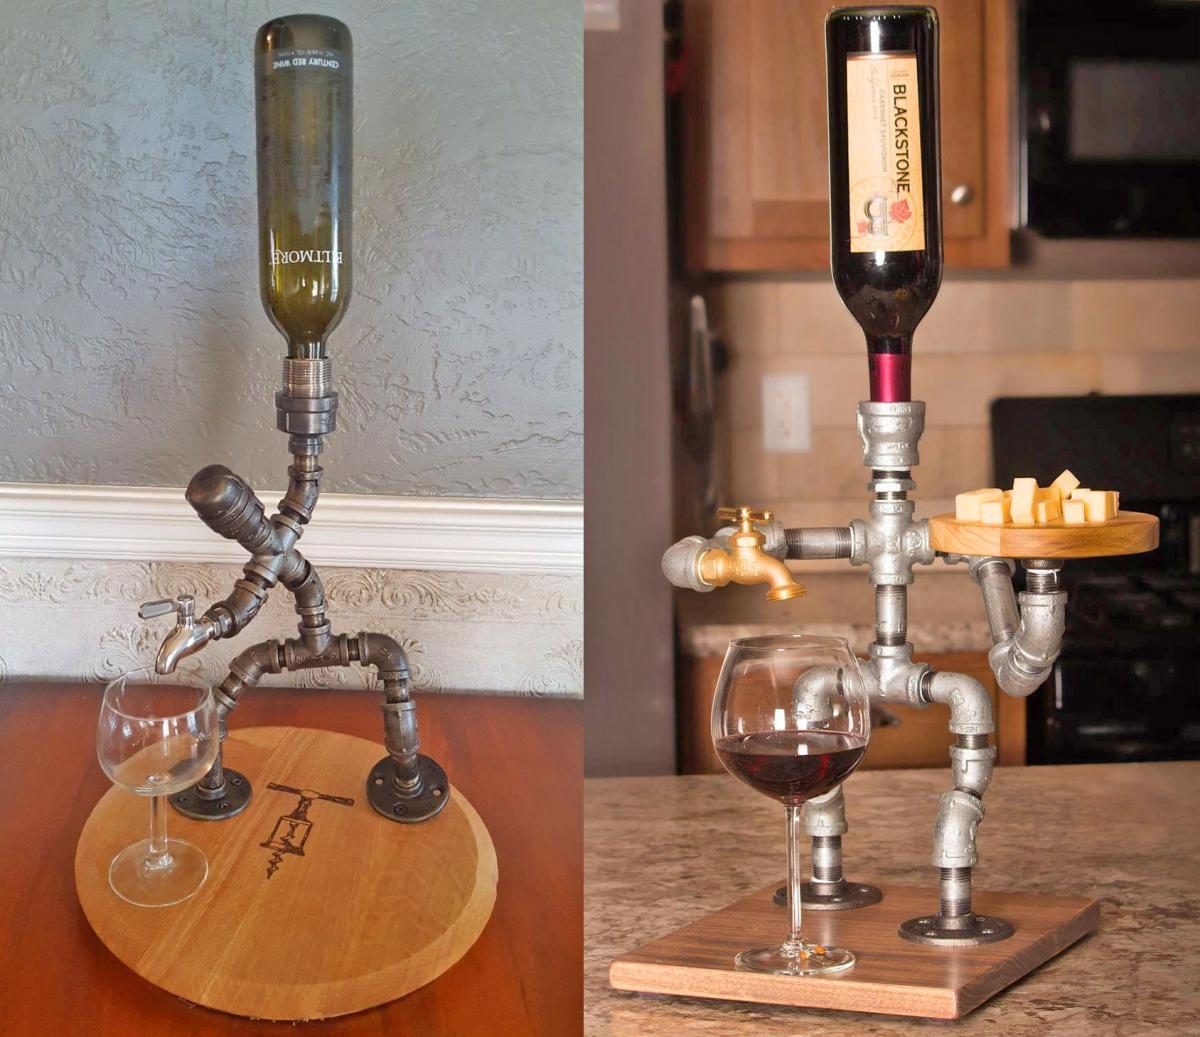 Pipe Man Liquor Dispensers - Industrial design DIY homemade booze dispenser made from metal piping